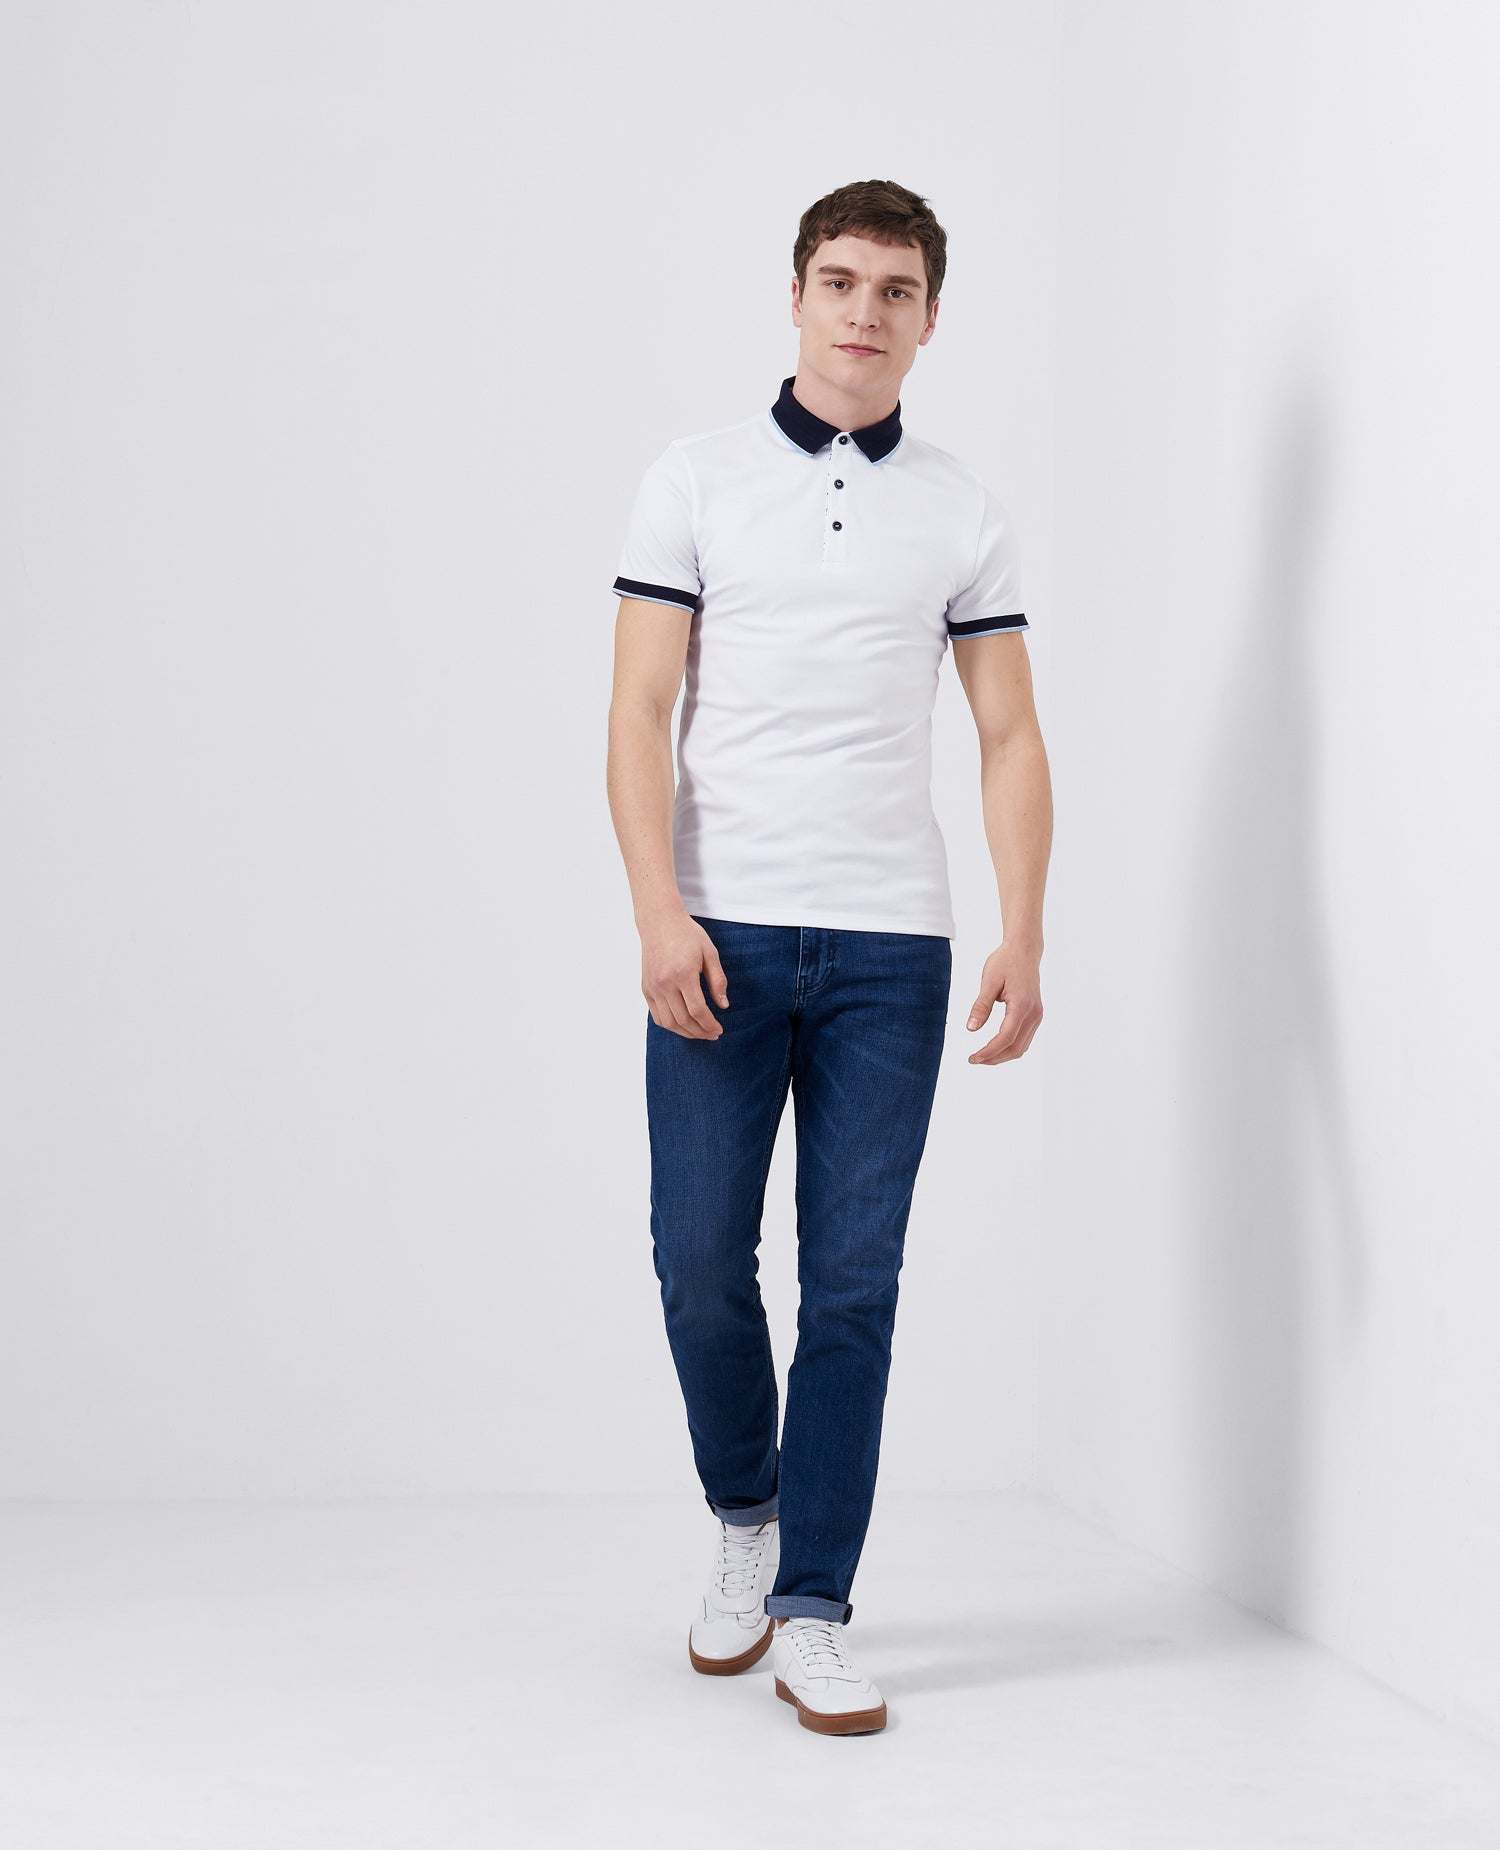 White and Navy Polo